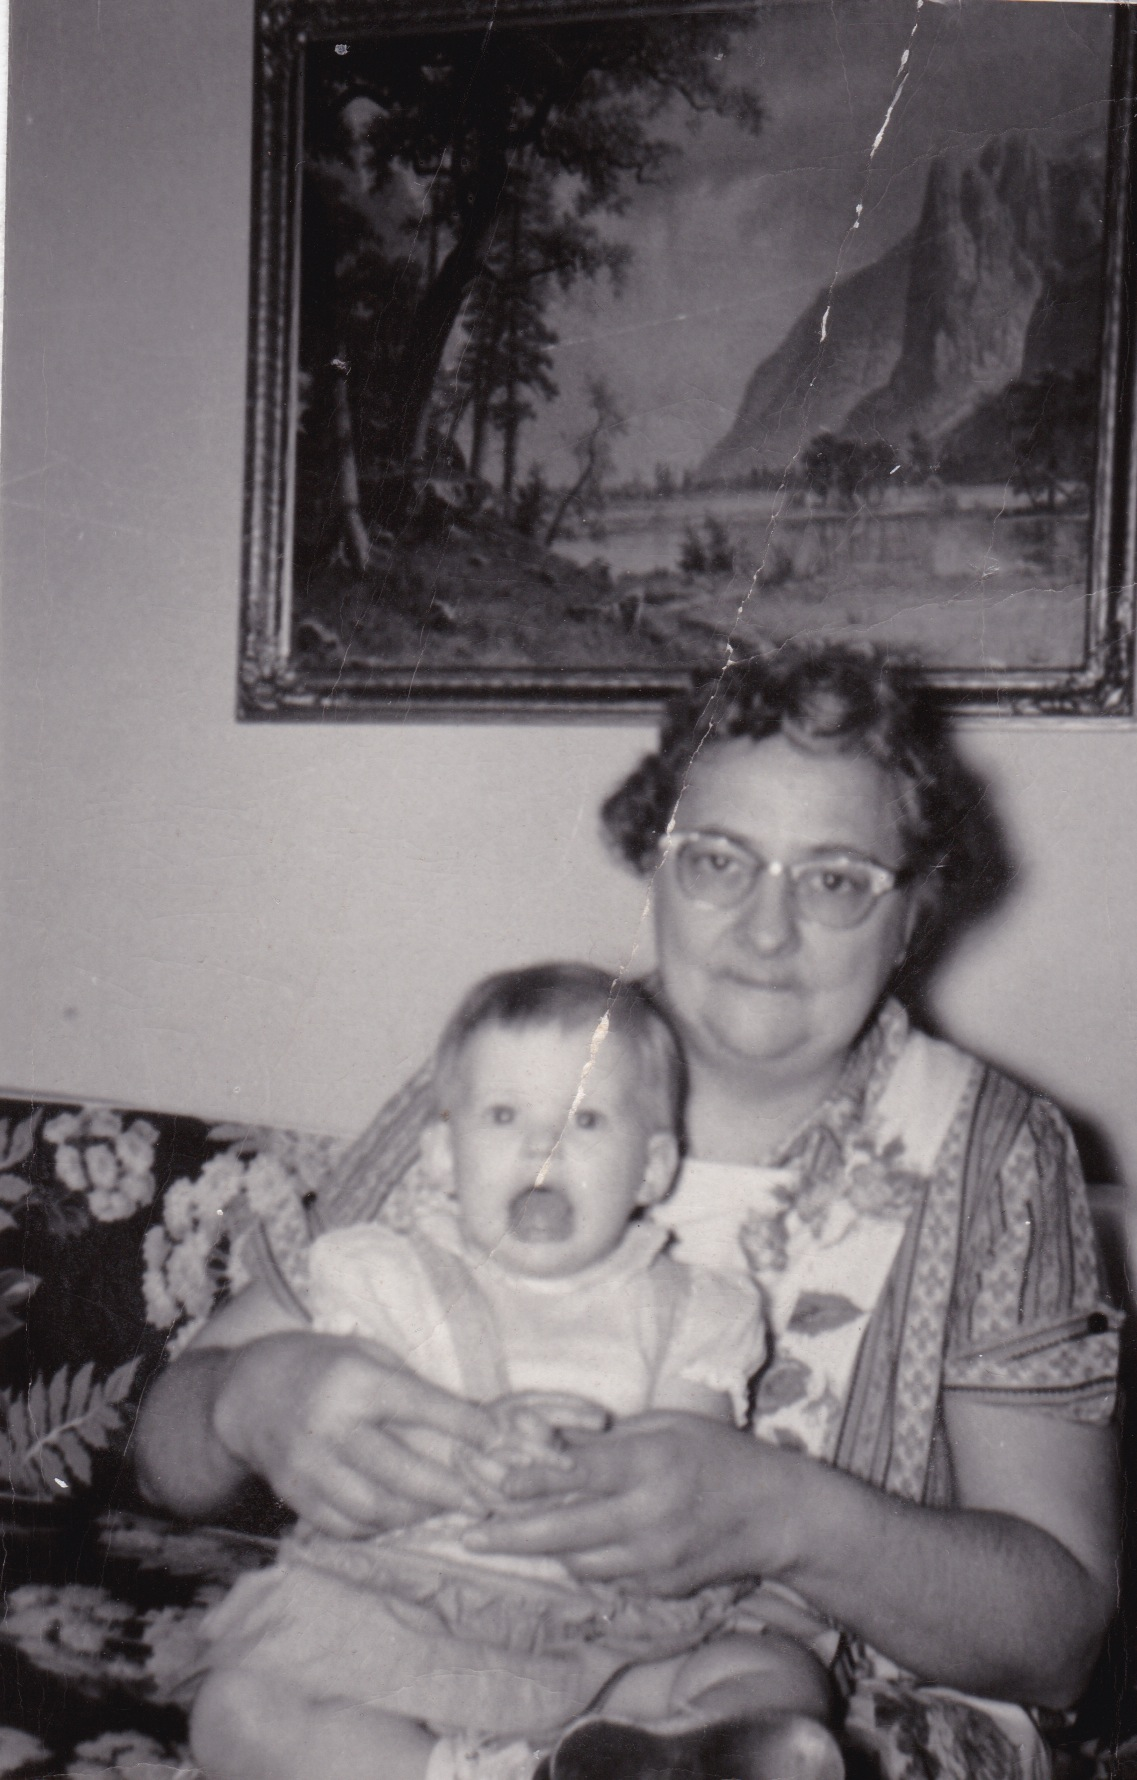 MY GRANDMA AND ME, 1957